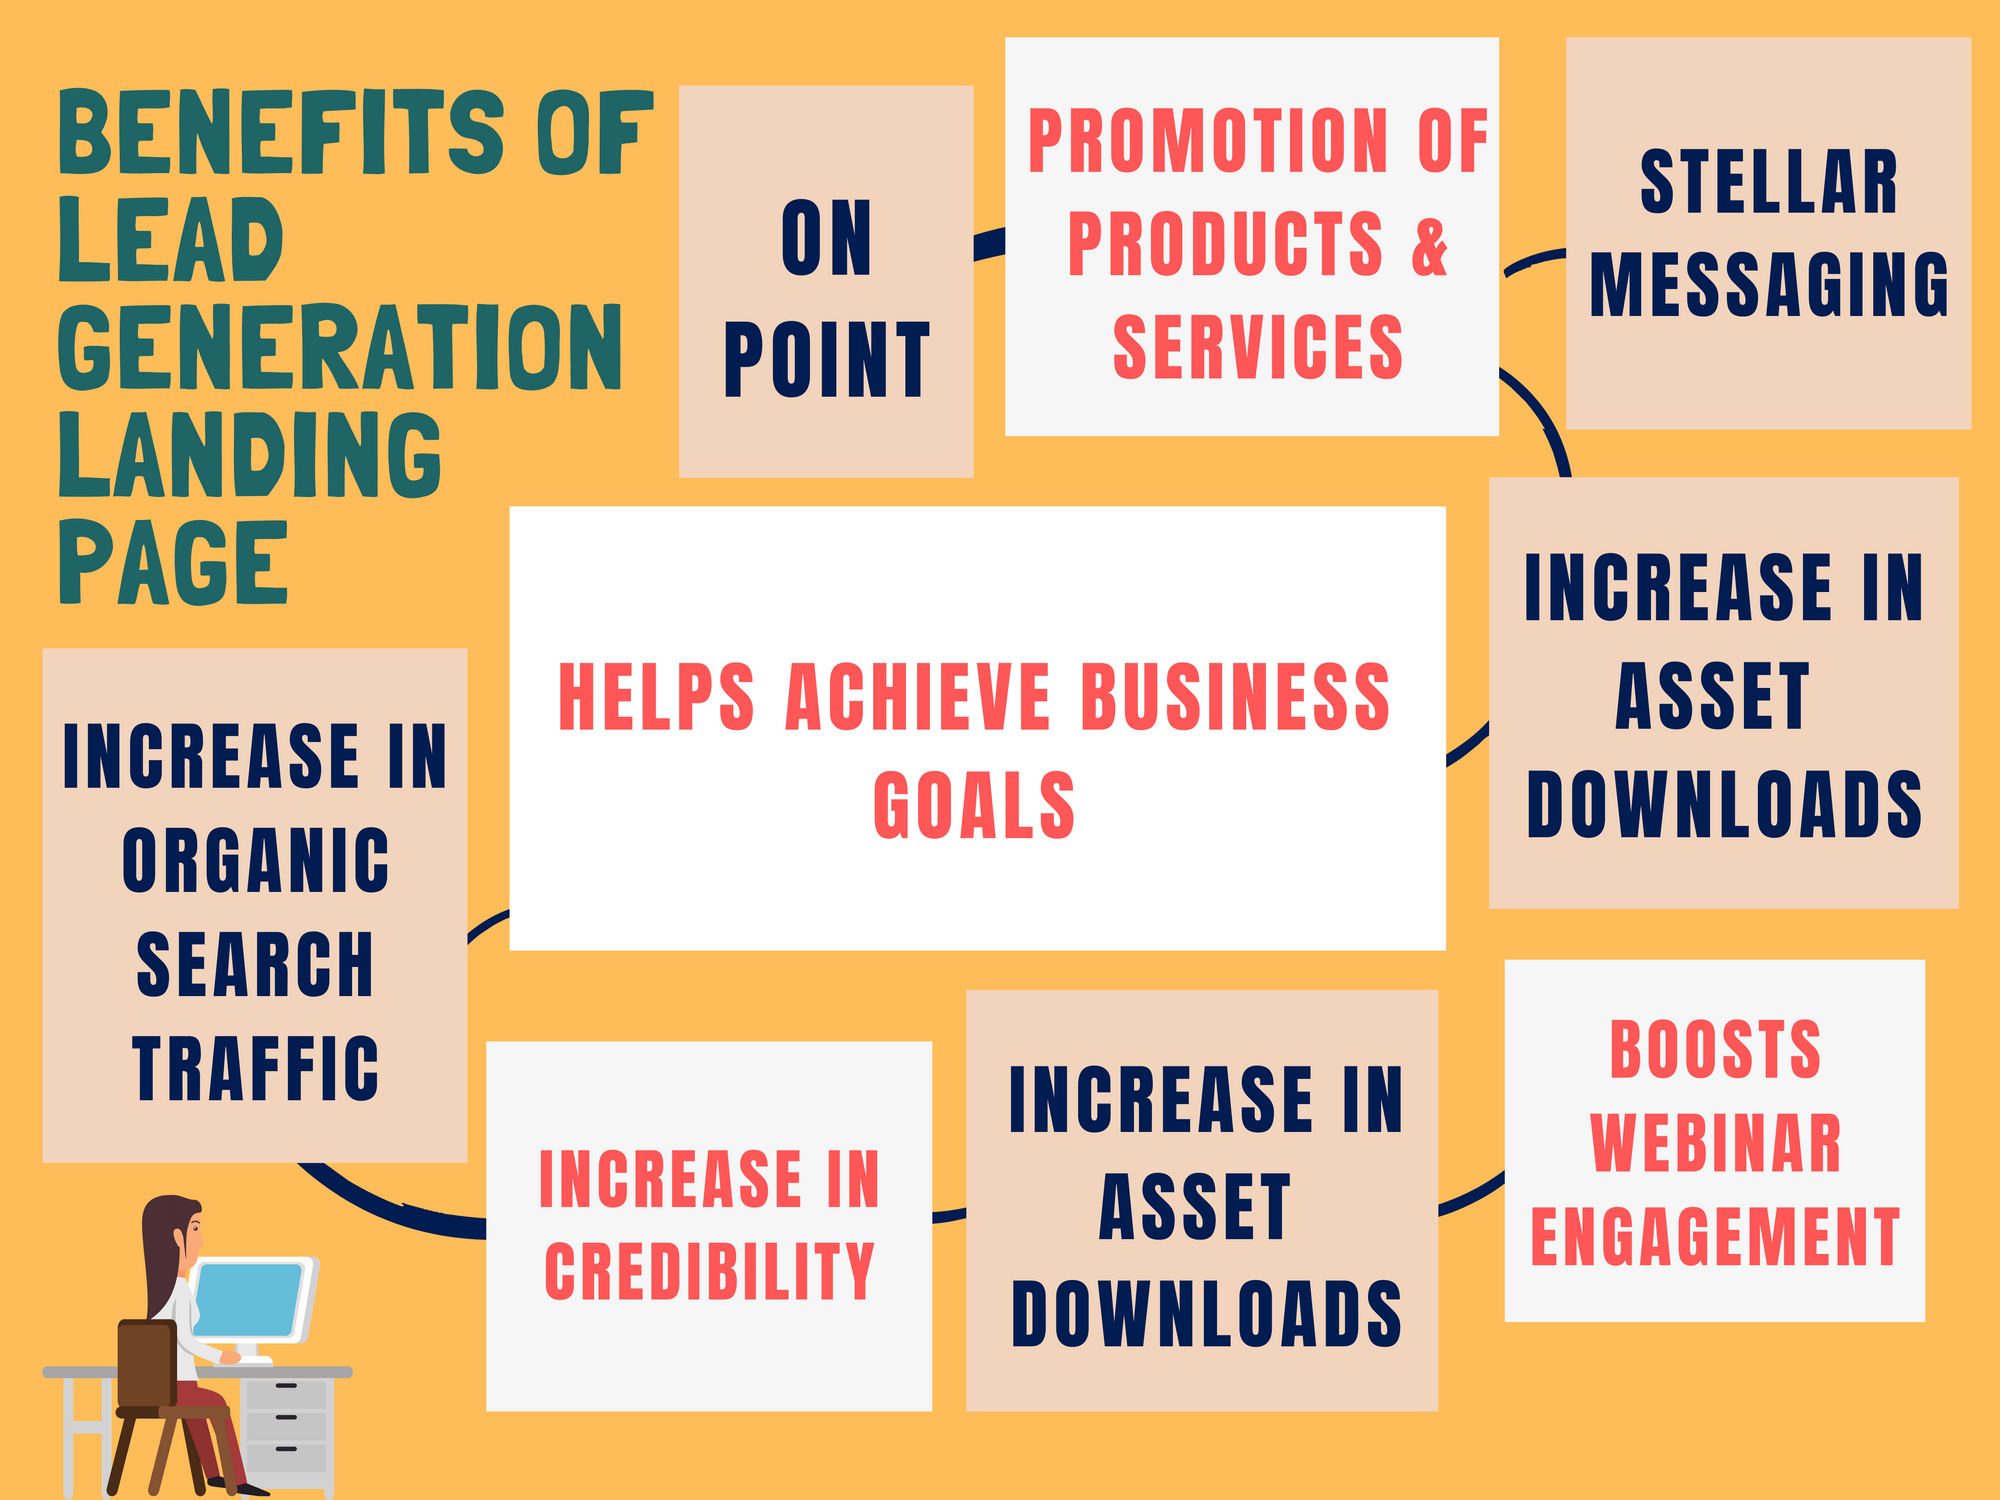 Benefits of lead generation landing page